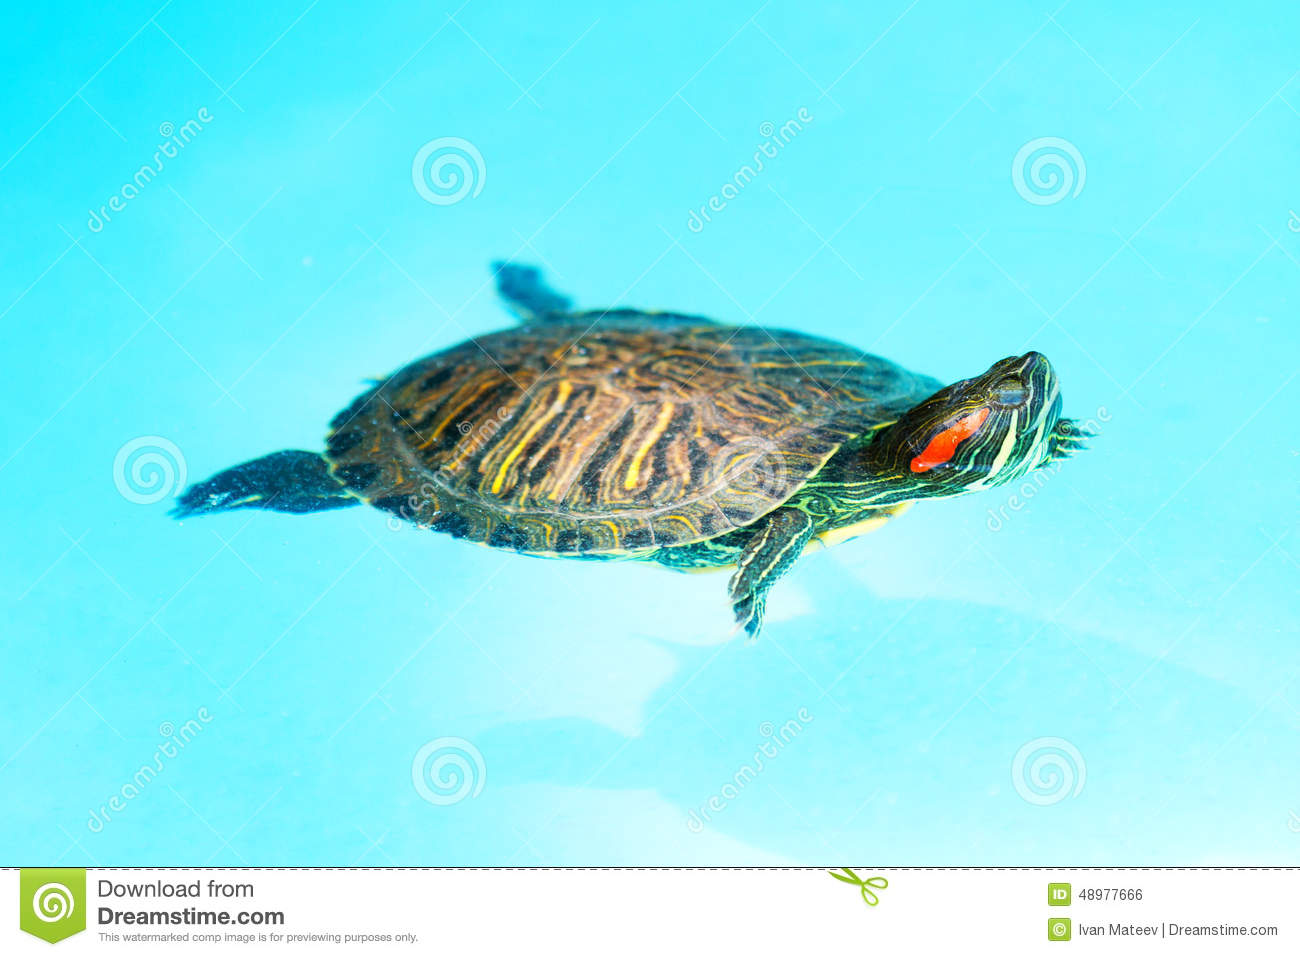 Swimming Turtle Stock Photo - Image: 48977666